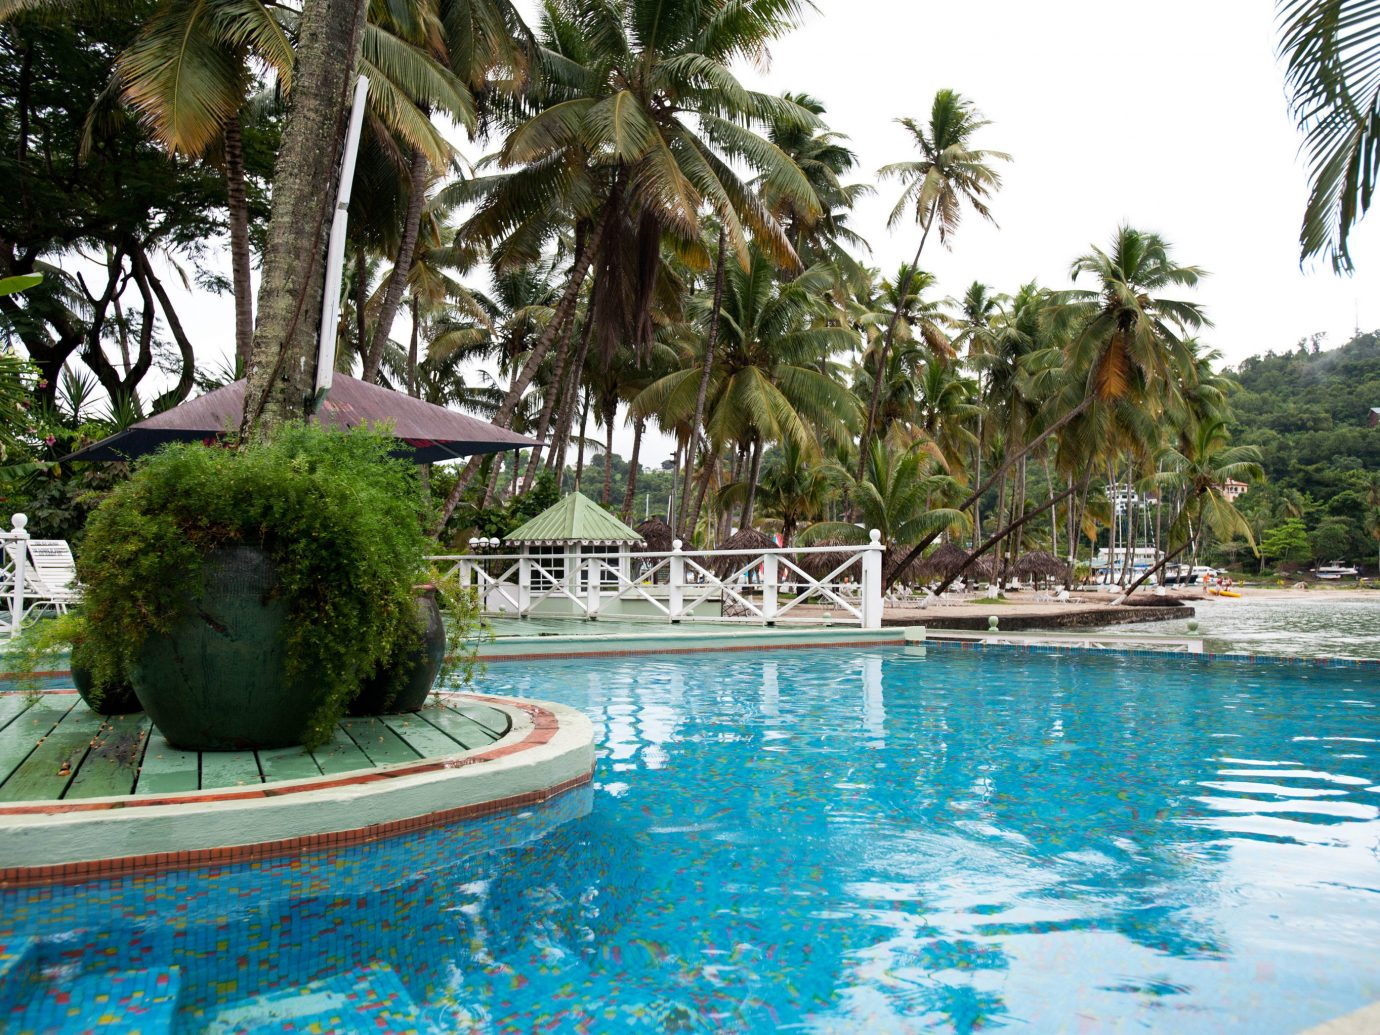 Hotels tree water outdoor Pool swimming pool property Resort vacation plant estate arecales resort town caribbean Villa Lagoon palm blue swimming